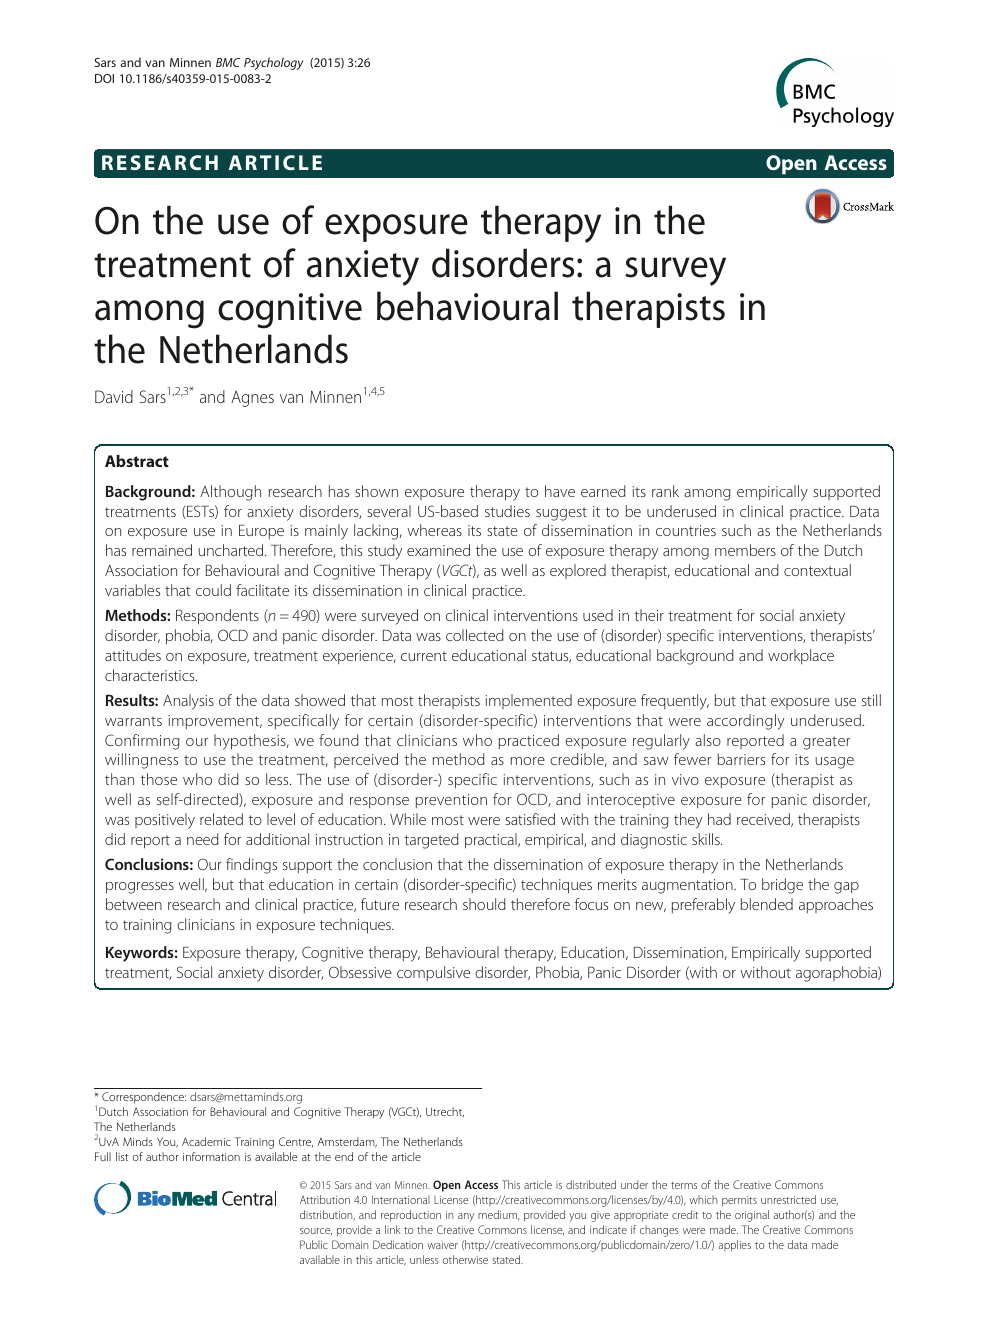 On the use of exposure therapy in the treatment of anxiety